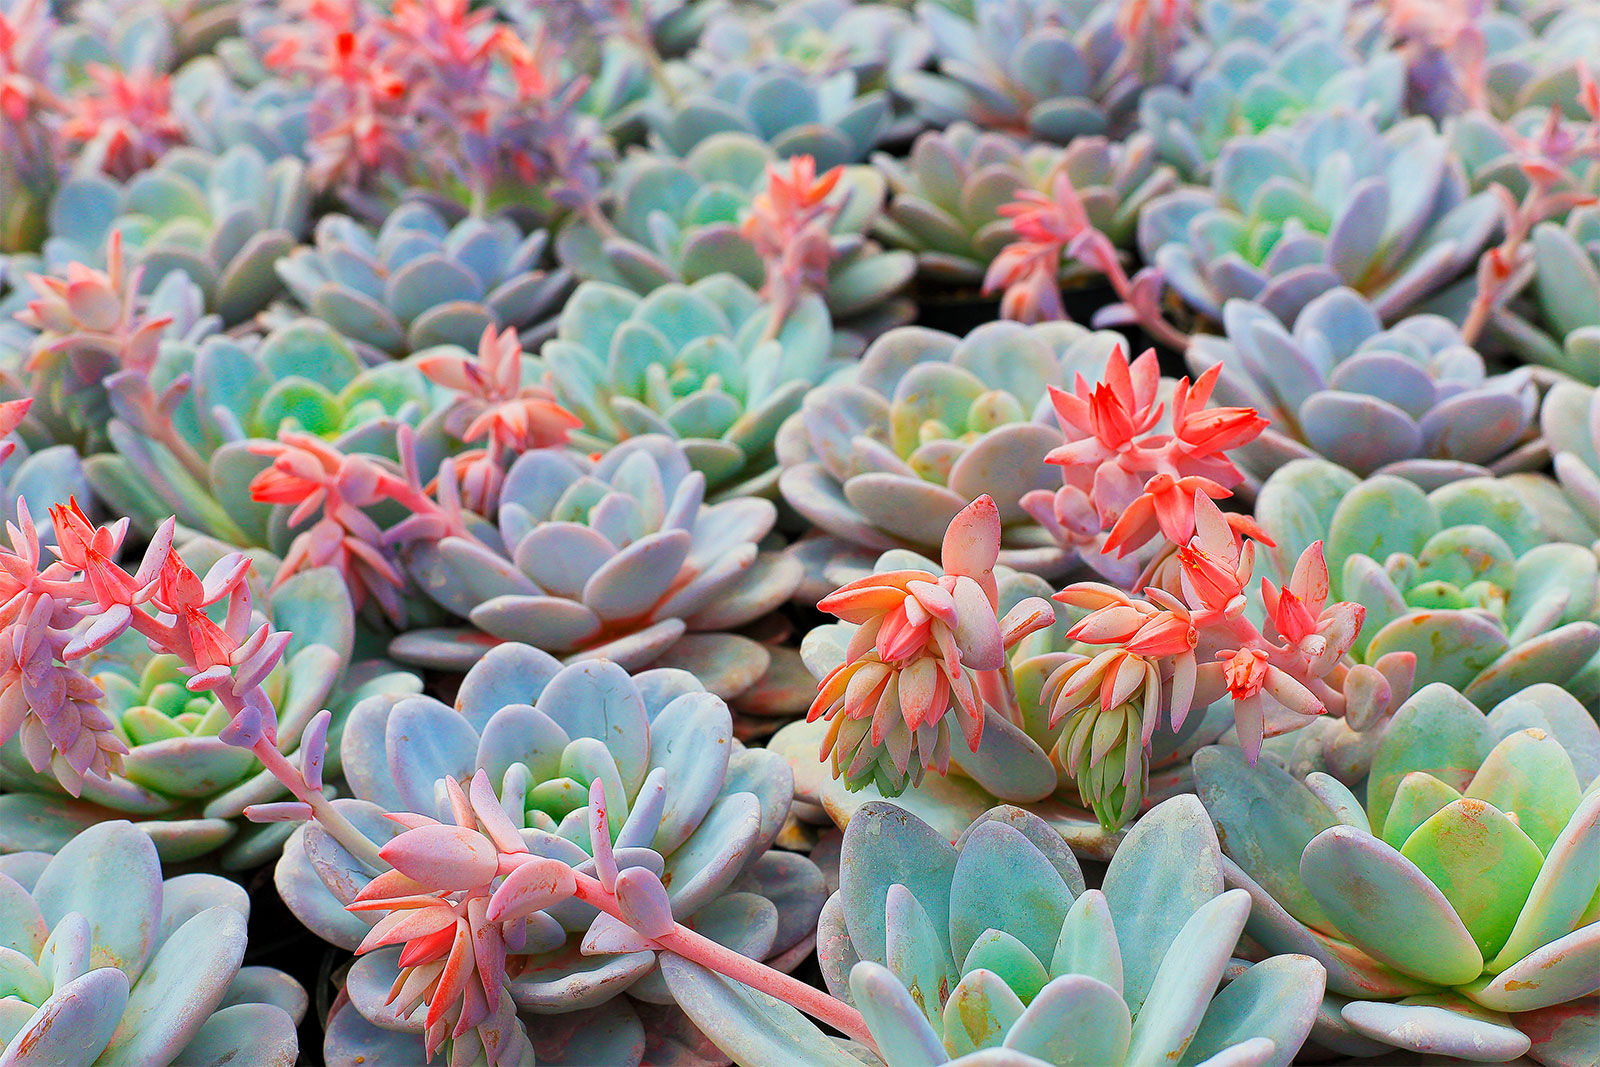 A cluster of succulents with a blue hue.